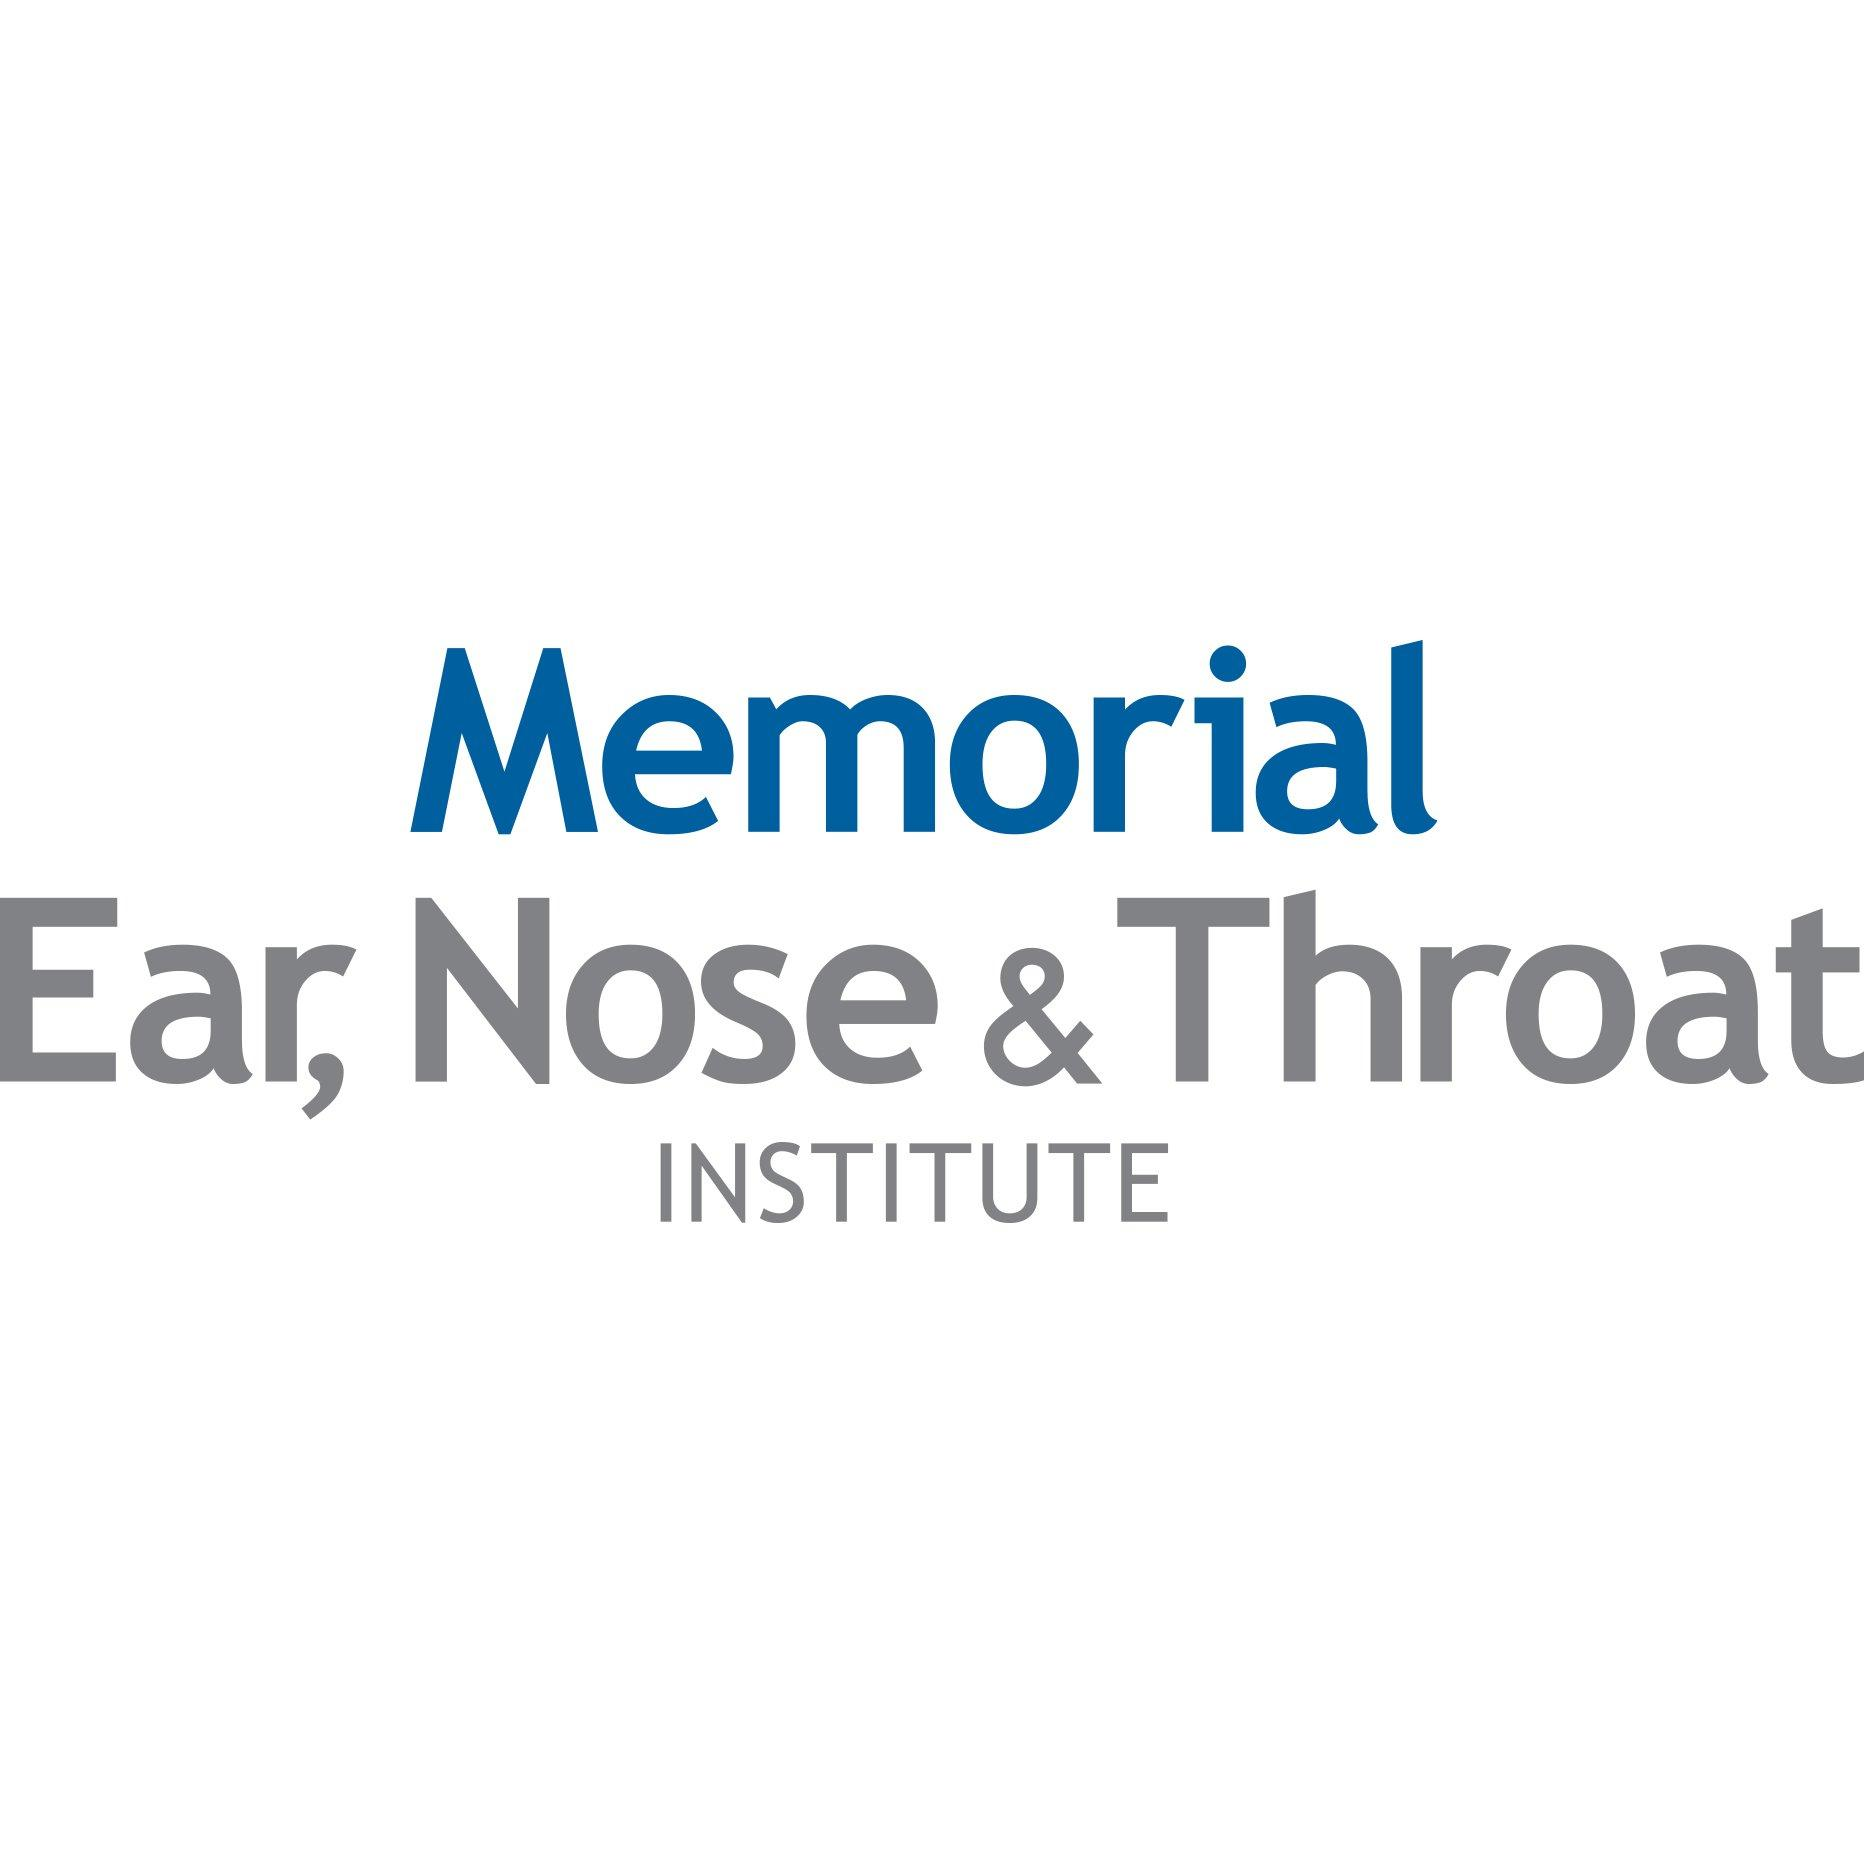 Memorial Ear, Nose and Throat Institute Logo